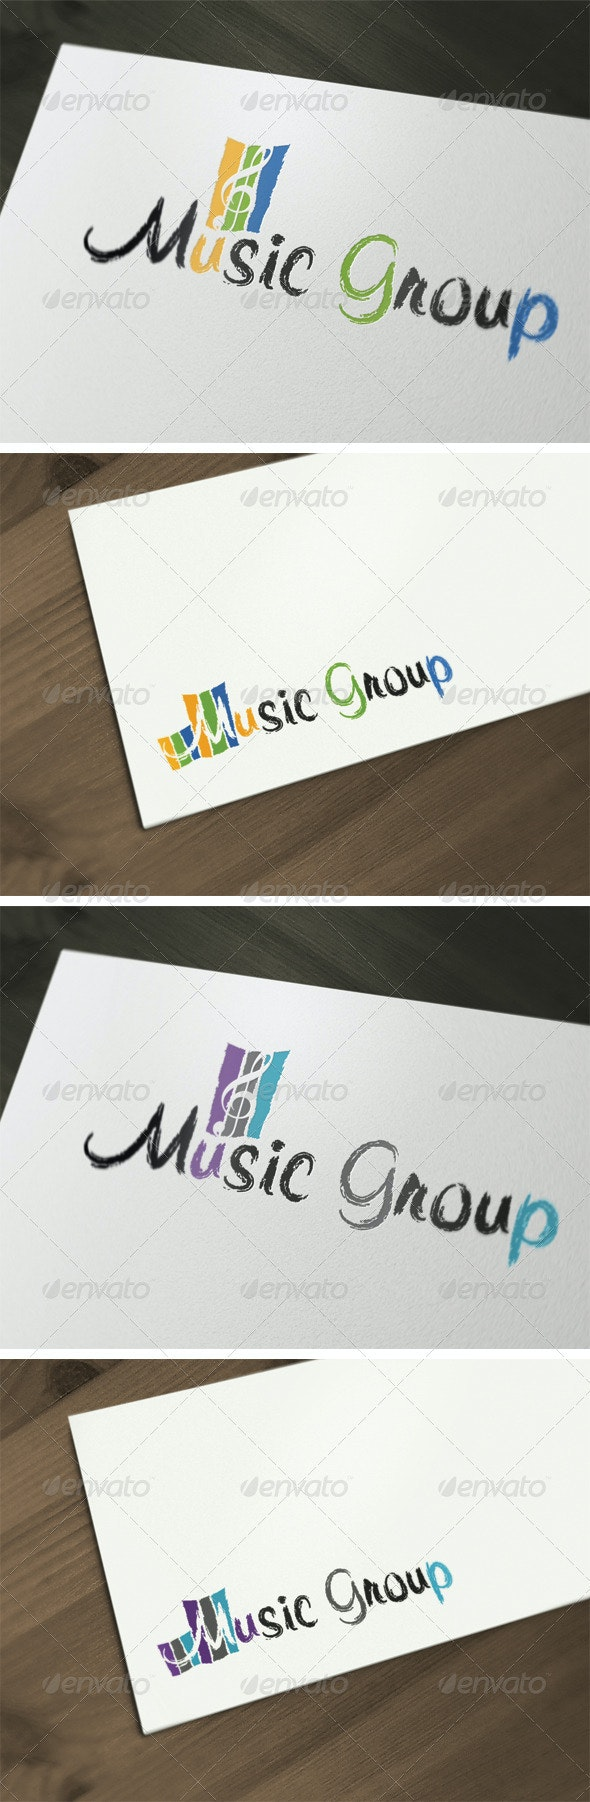 Music Group Logo Template - Vector Abstract